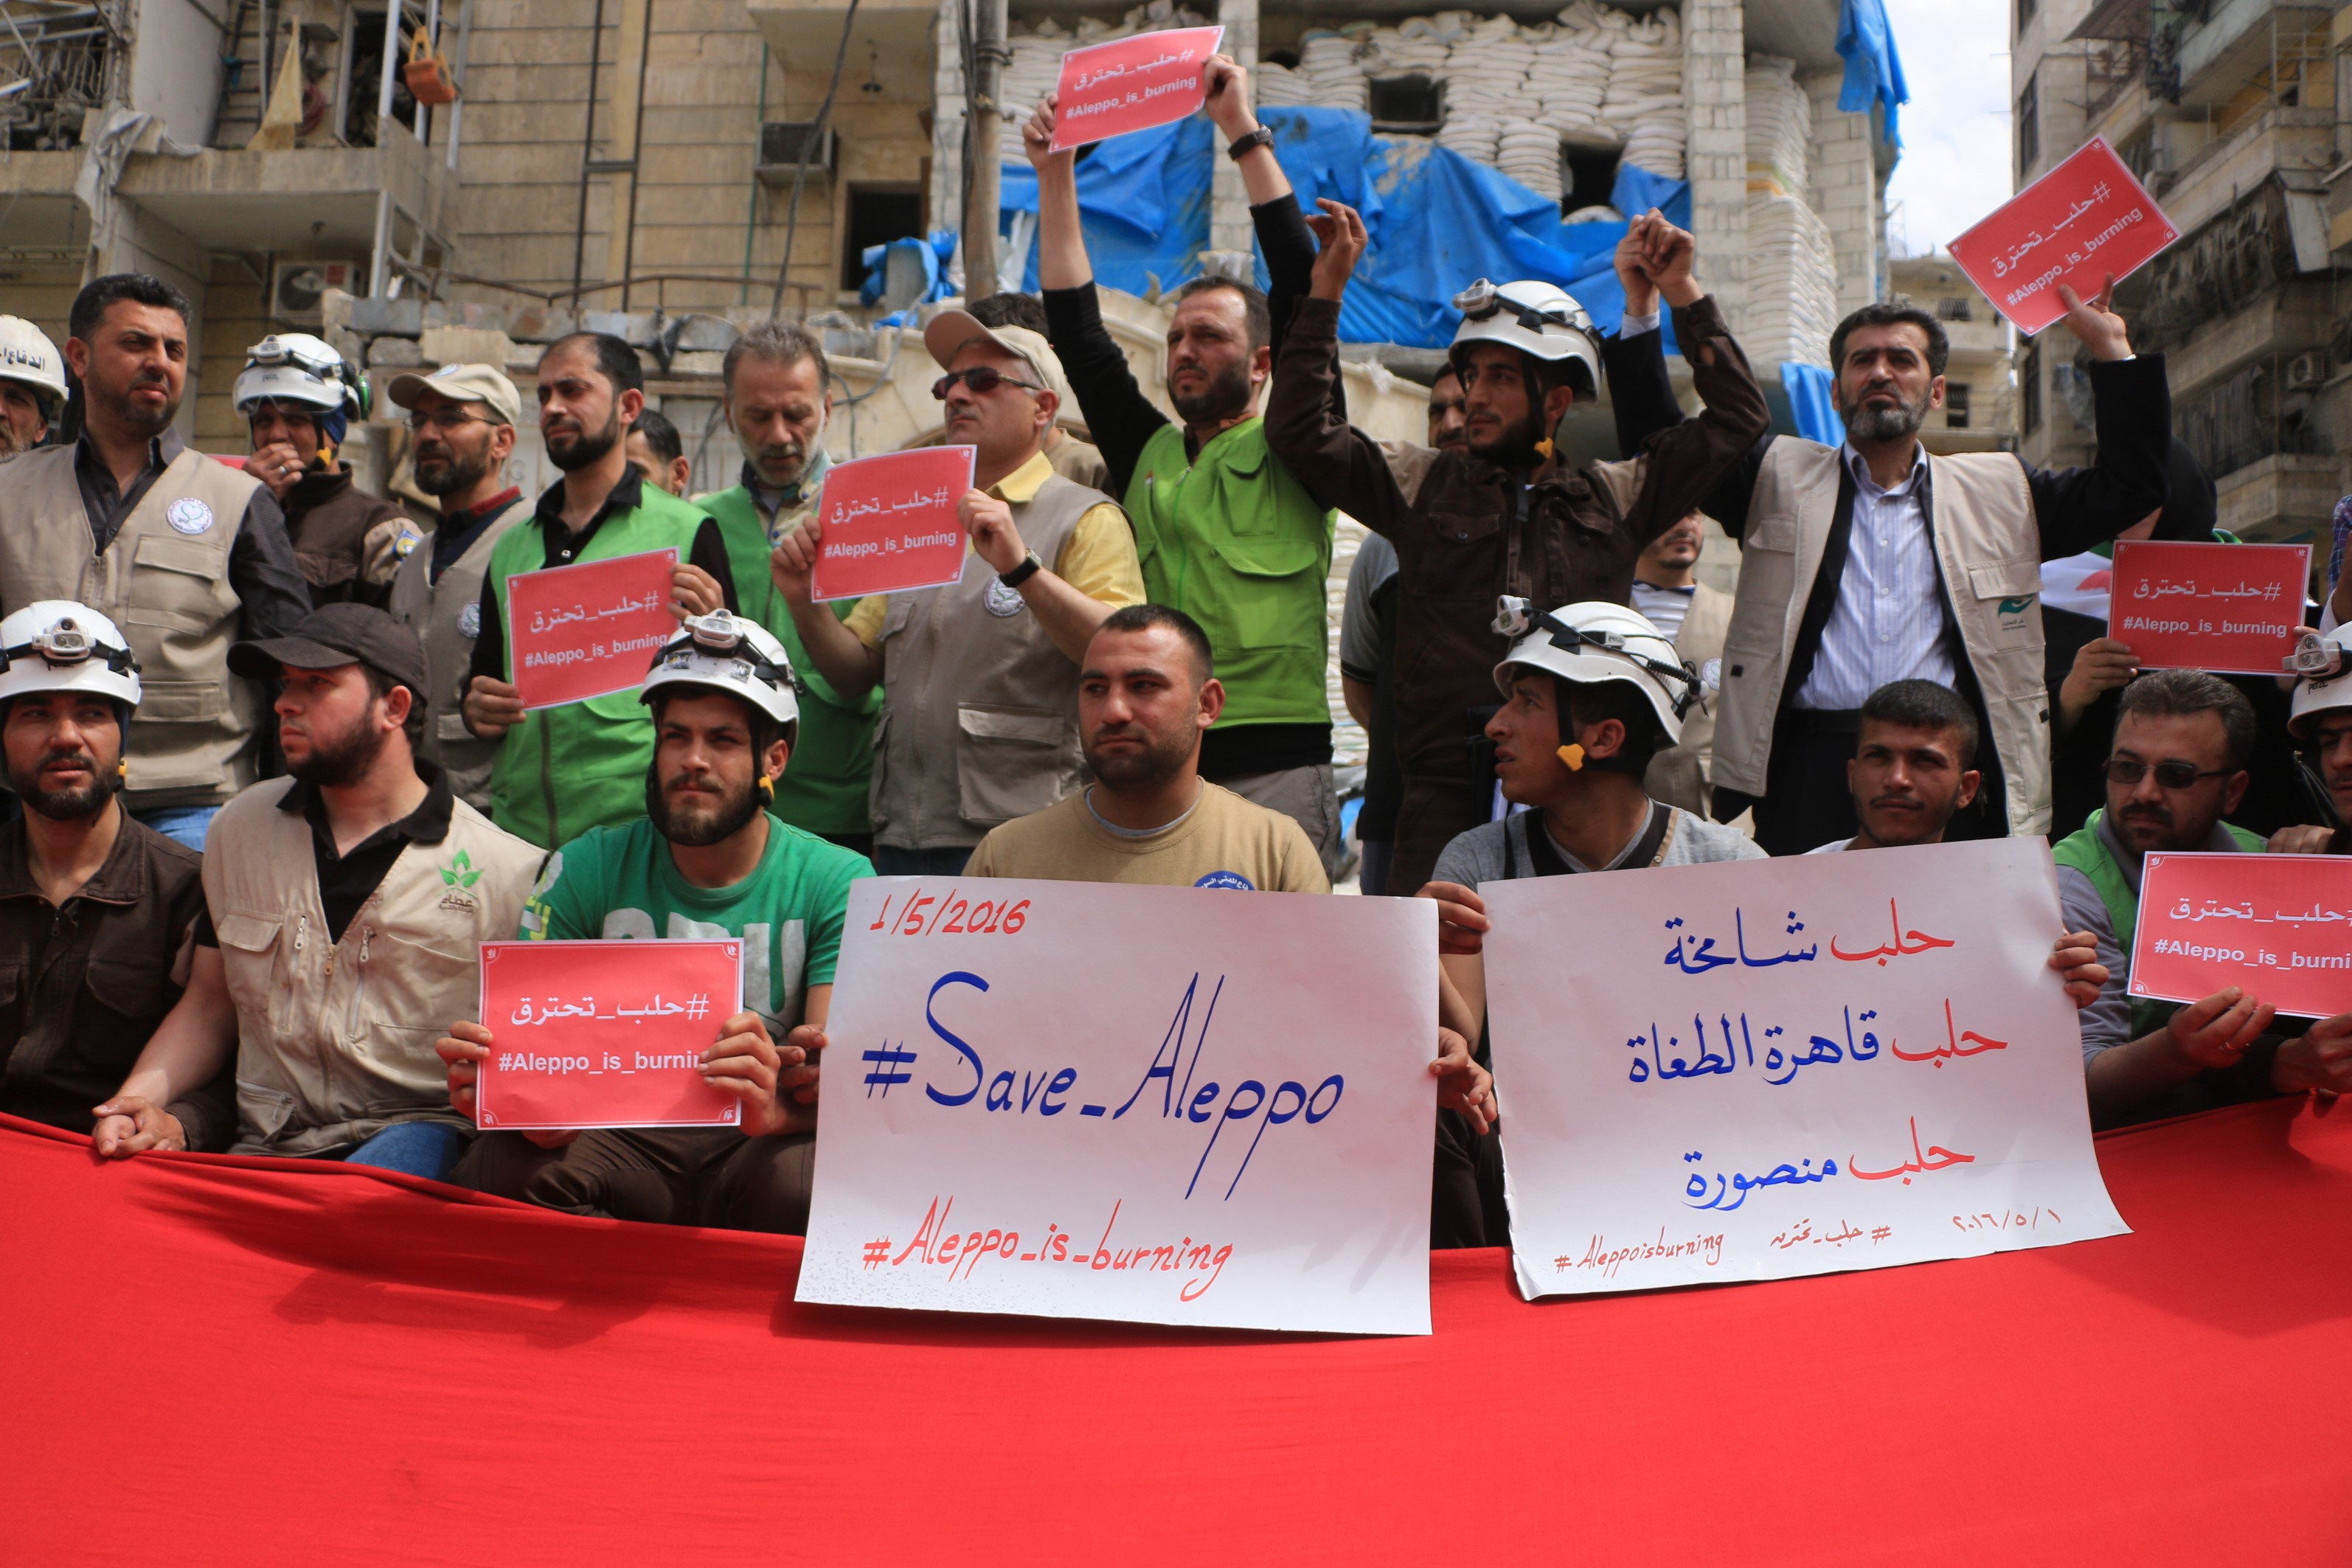 Syrians hold banners during a protest against Russian airstrikes on Jerusalem field hospital in the Sukkeri neighborhood of Aleppo, Syria, on May 1, 2016.